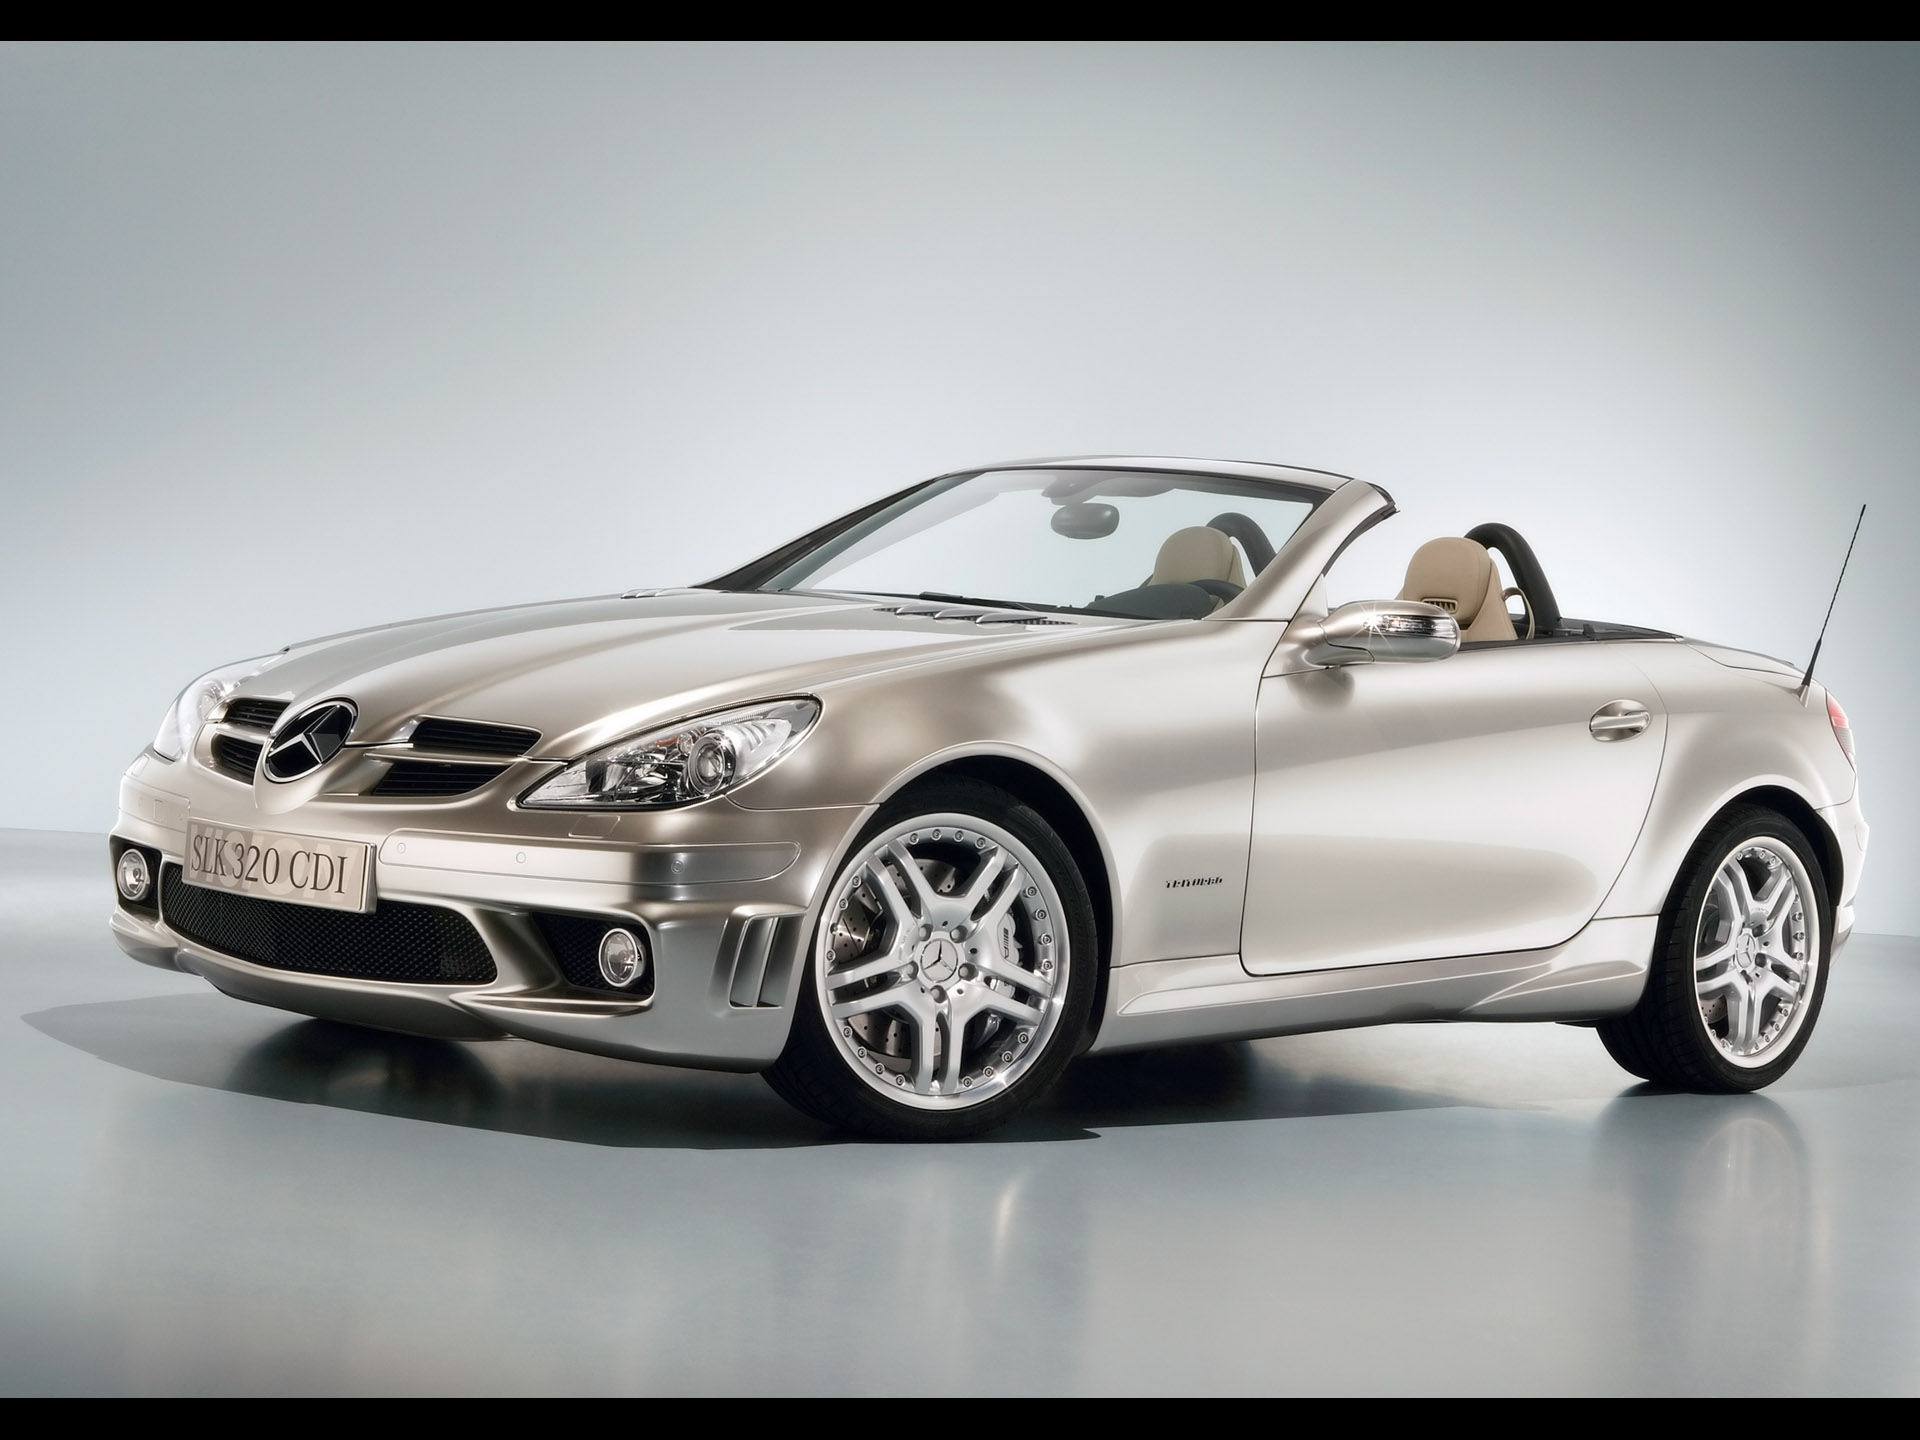 Mercedes benz slk 320 technical details history photos for Mercedes benz slk accessories